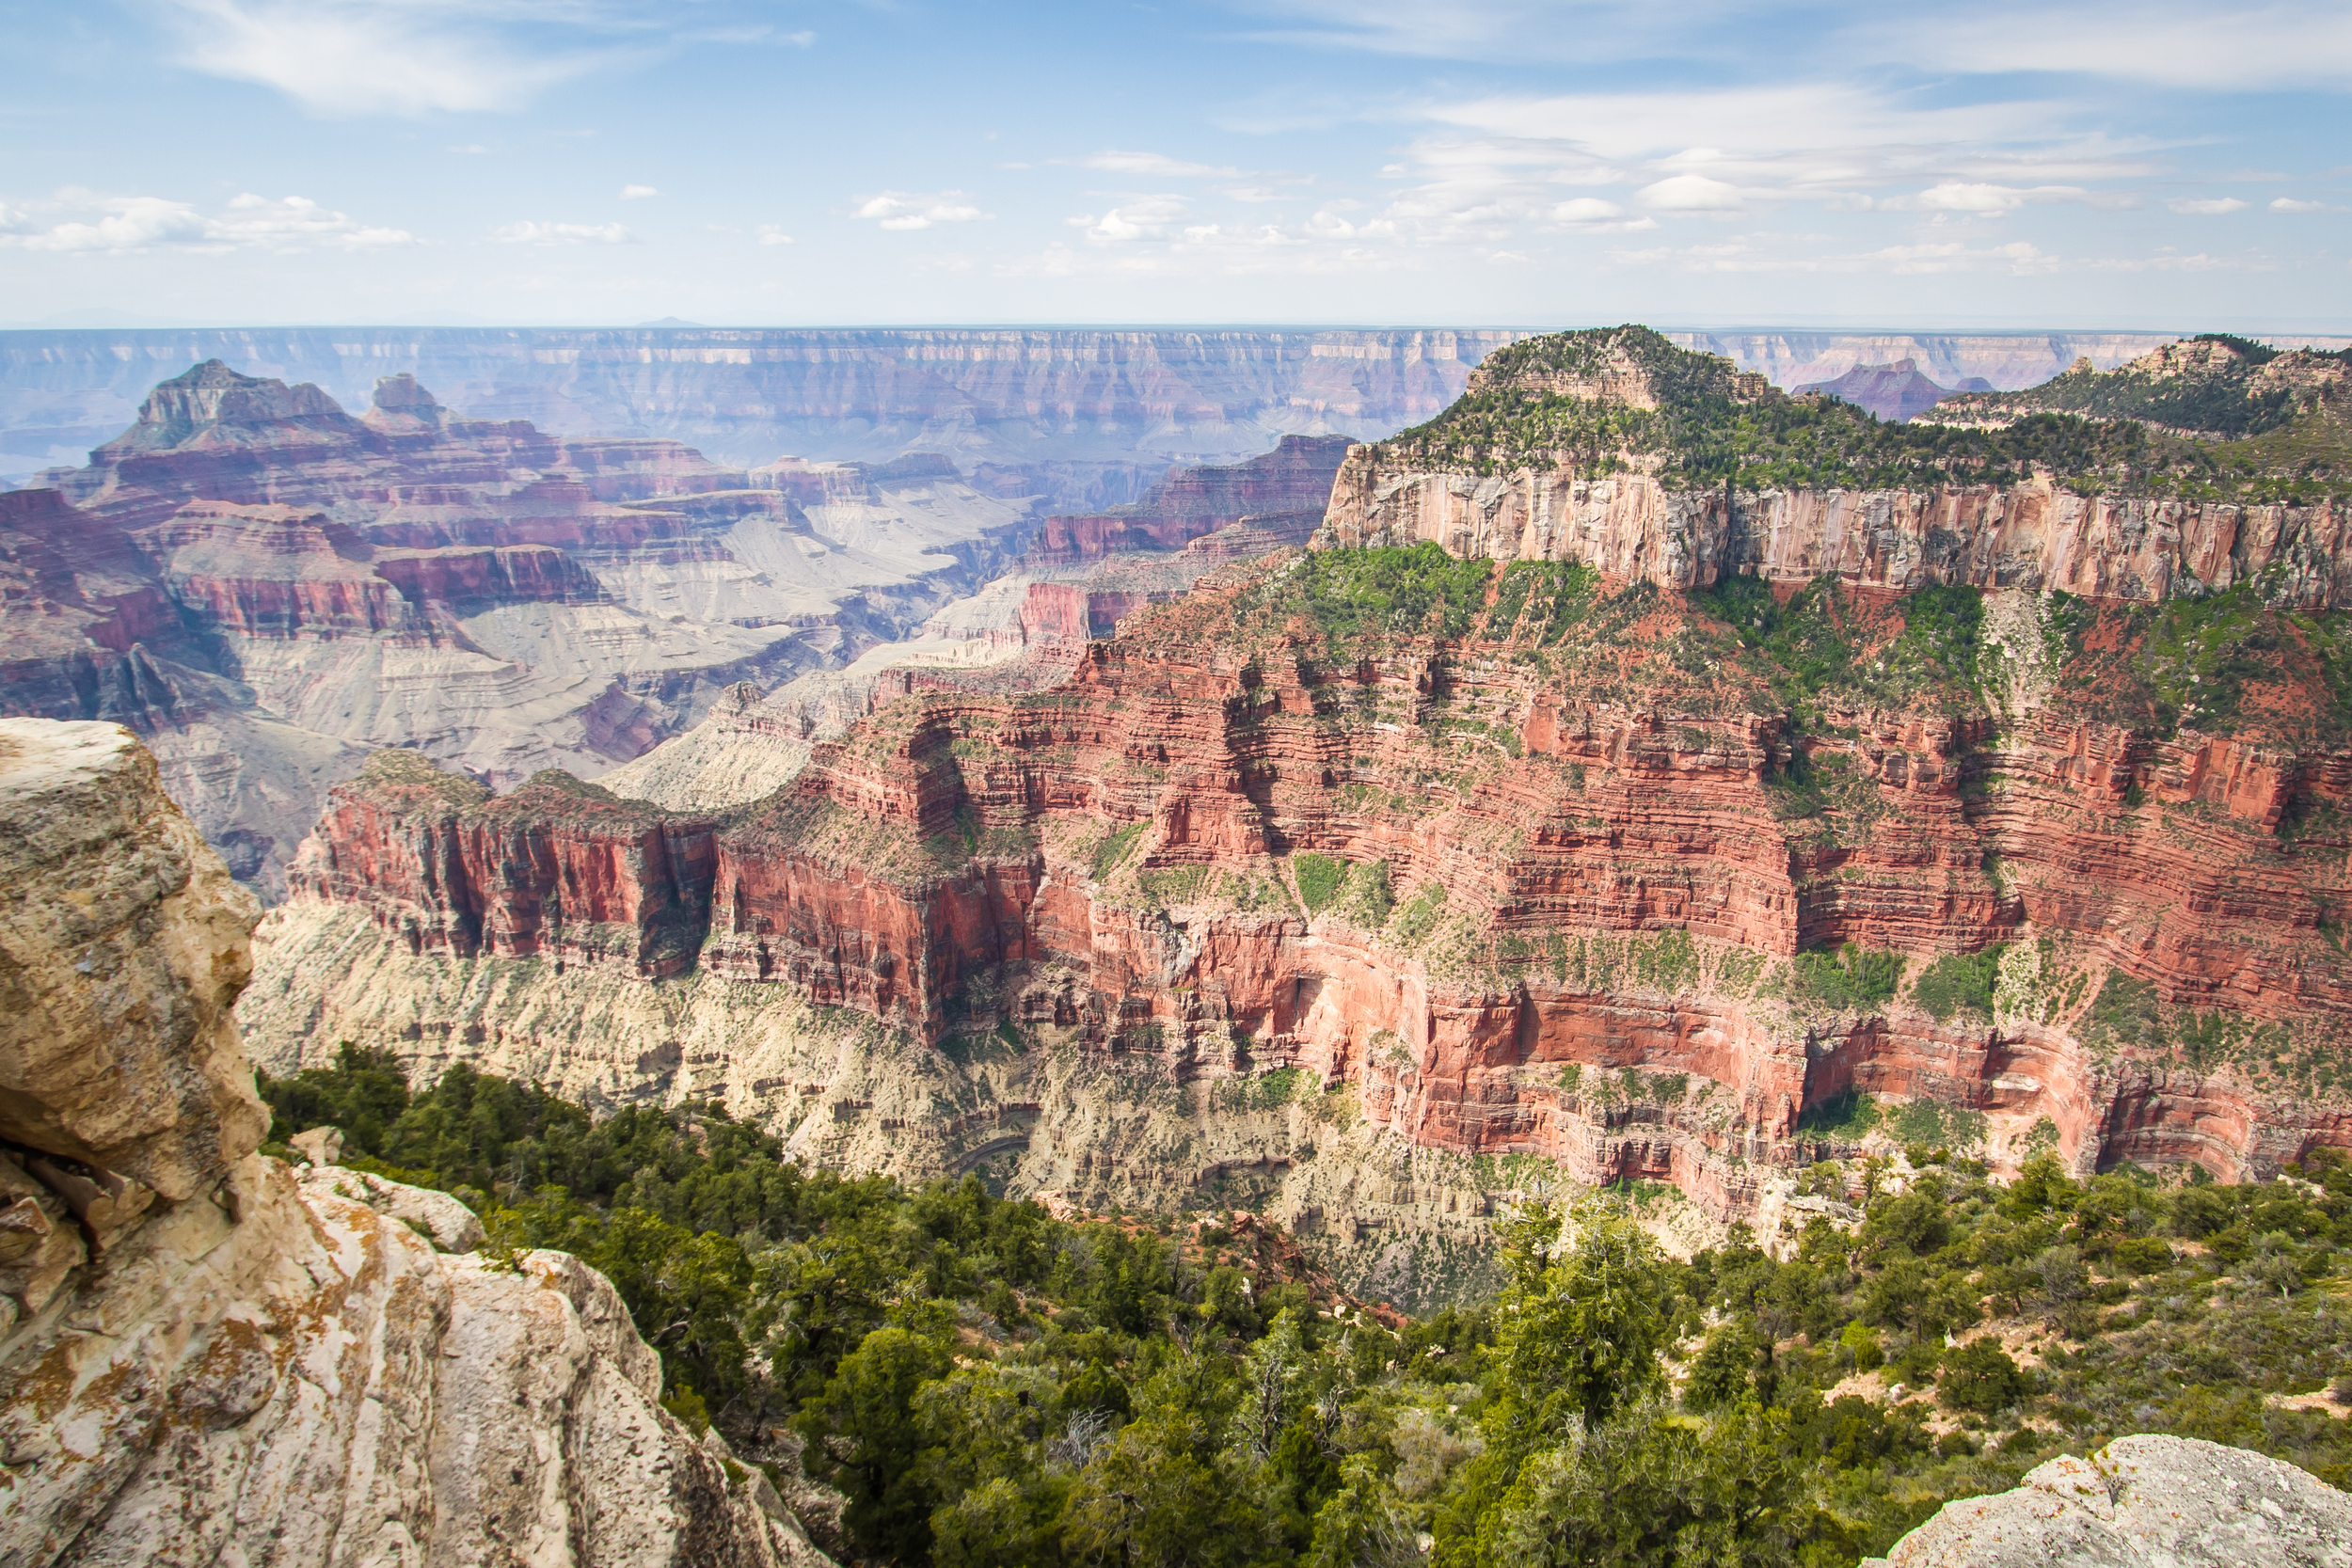 Borda Norte do Grand Canyon - North Rim